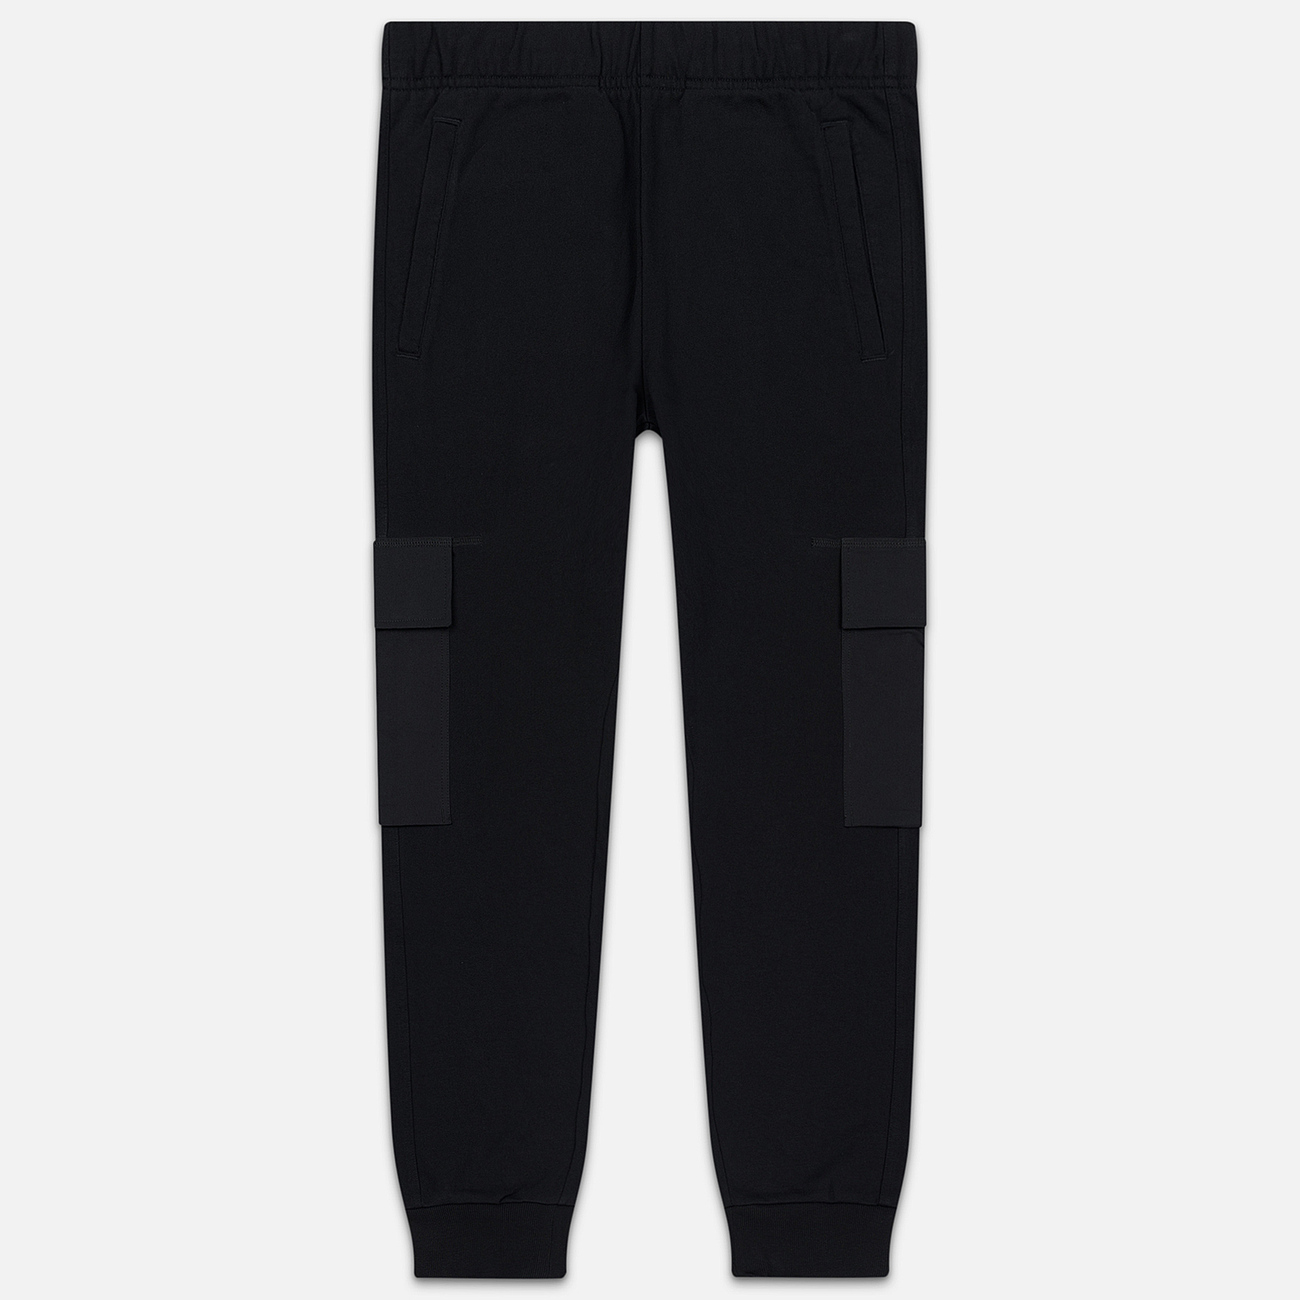 Мужские брюки Carhartt WIP Klicks 11.5 Oz Black/Black